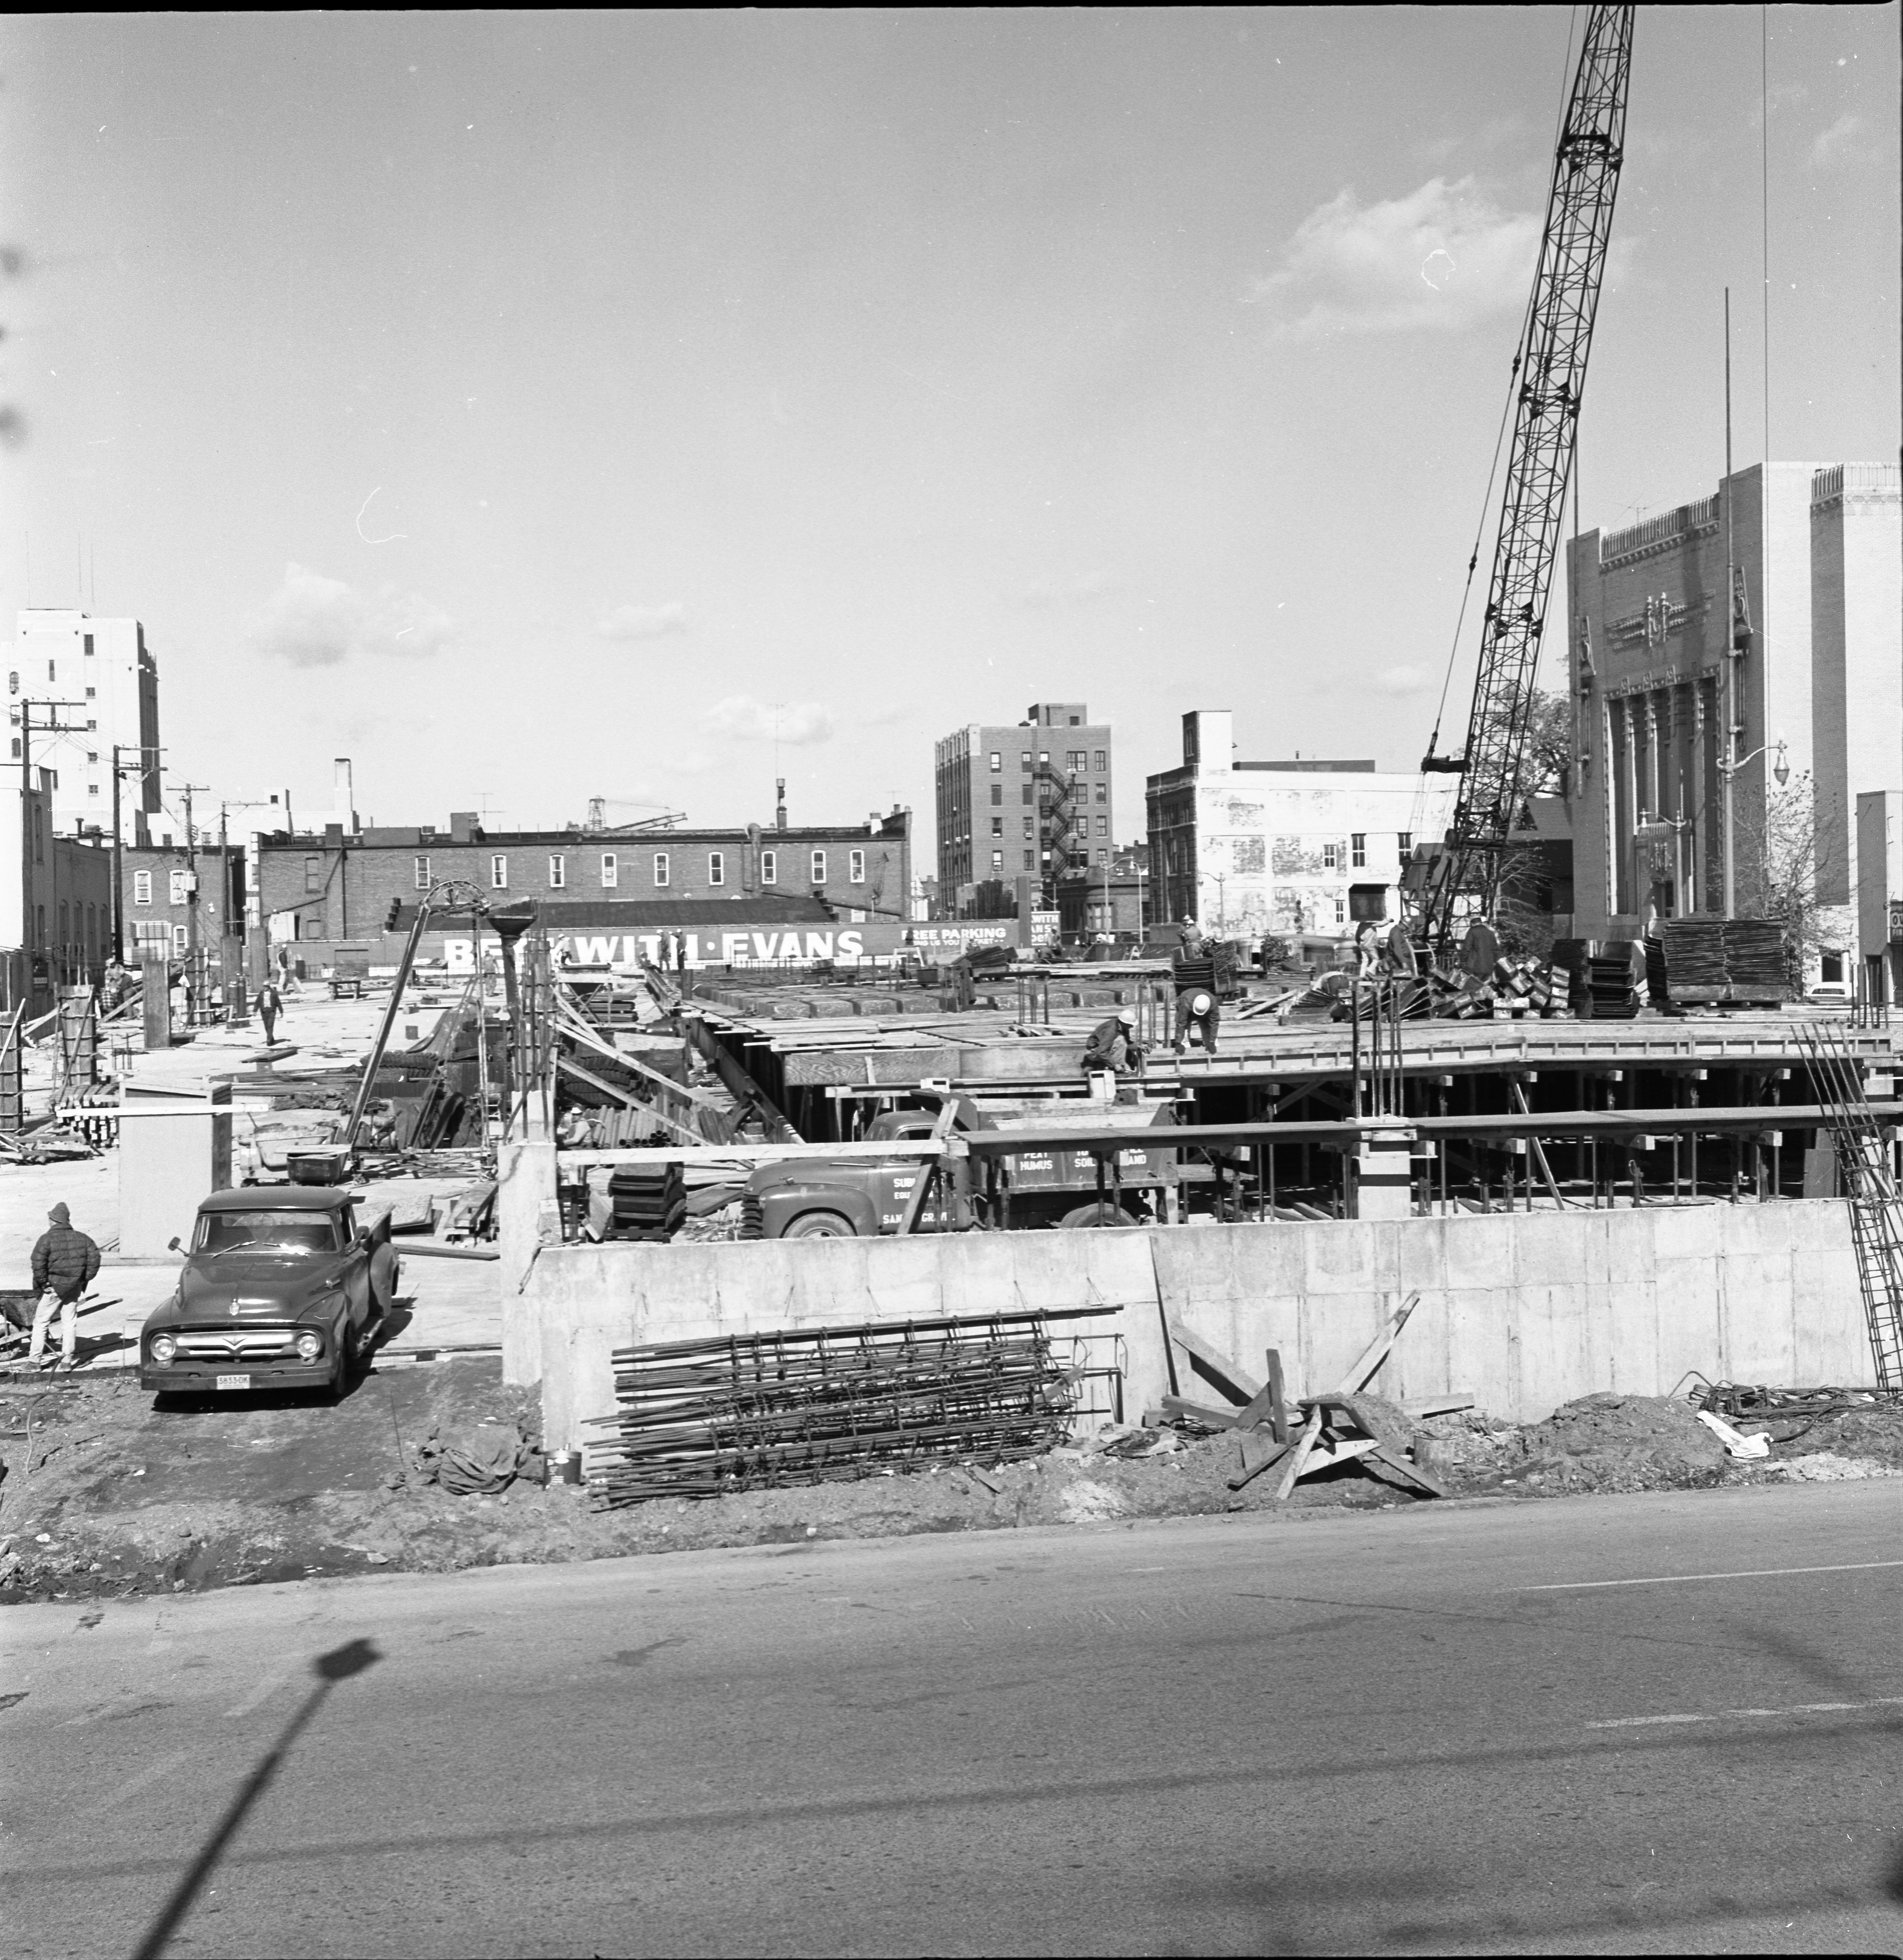 Carport Construction Site At William And Fourth, October 22 1966 image